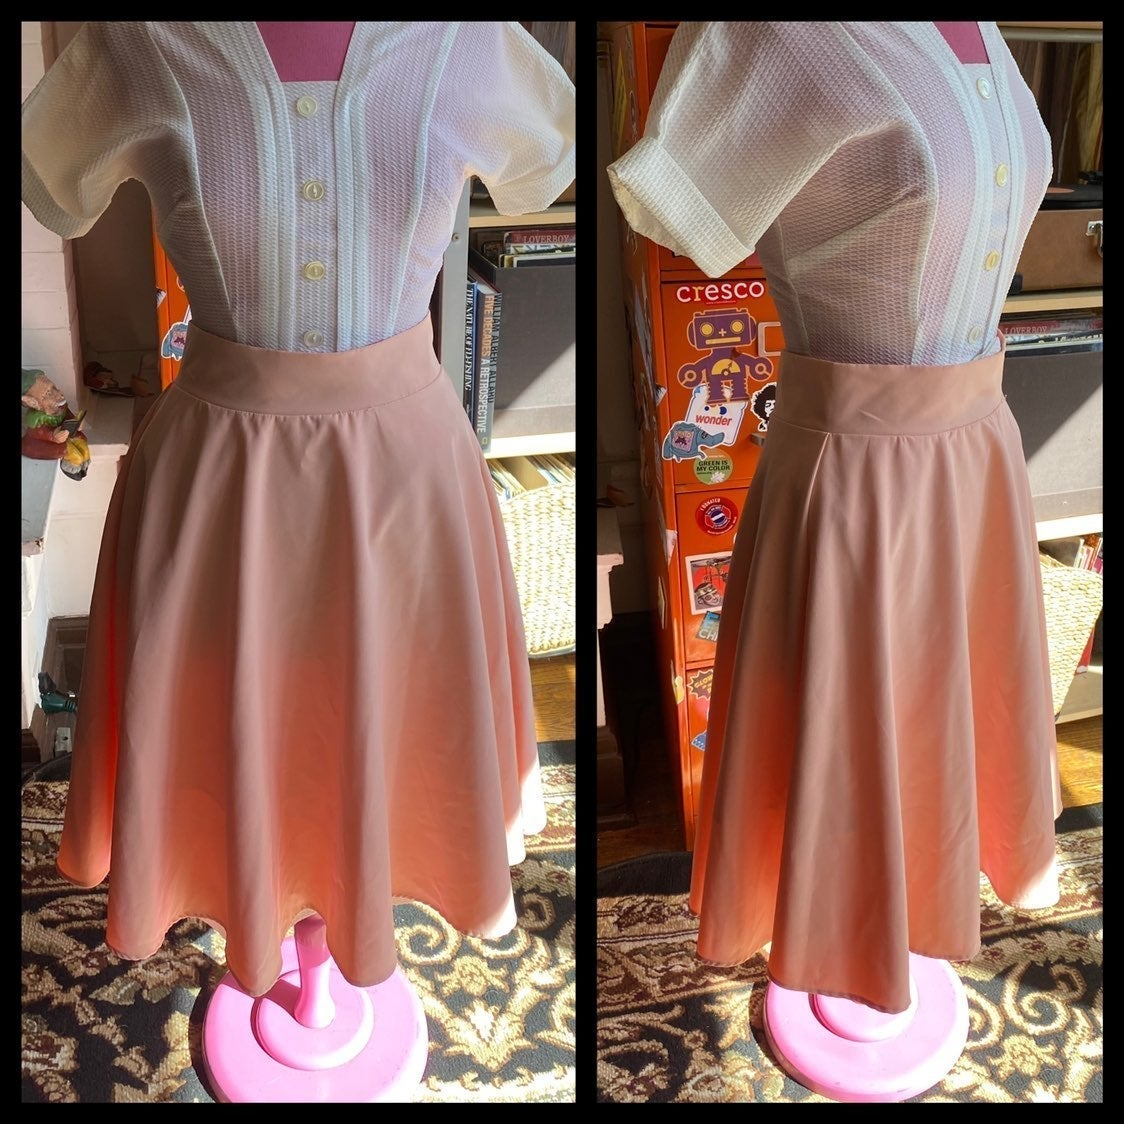 Pink poodle swing skirt